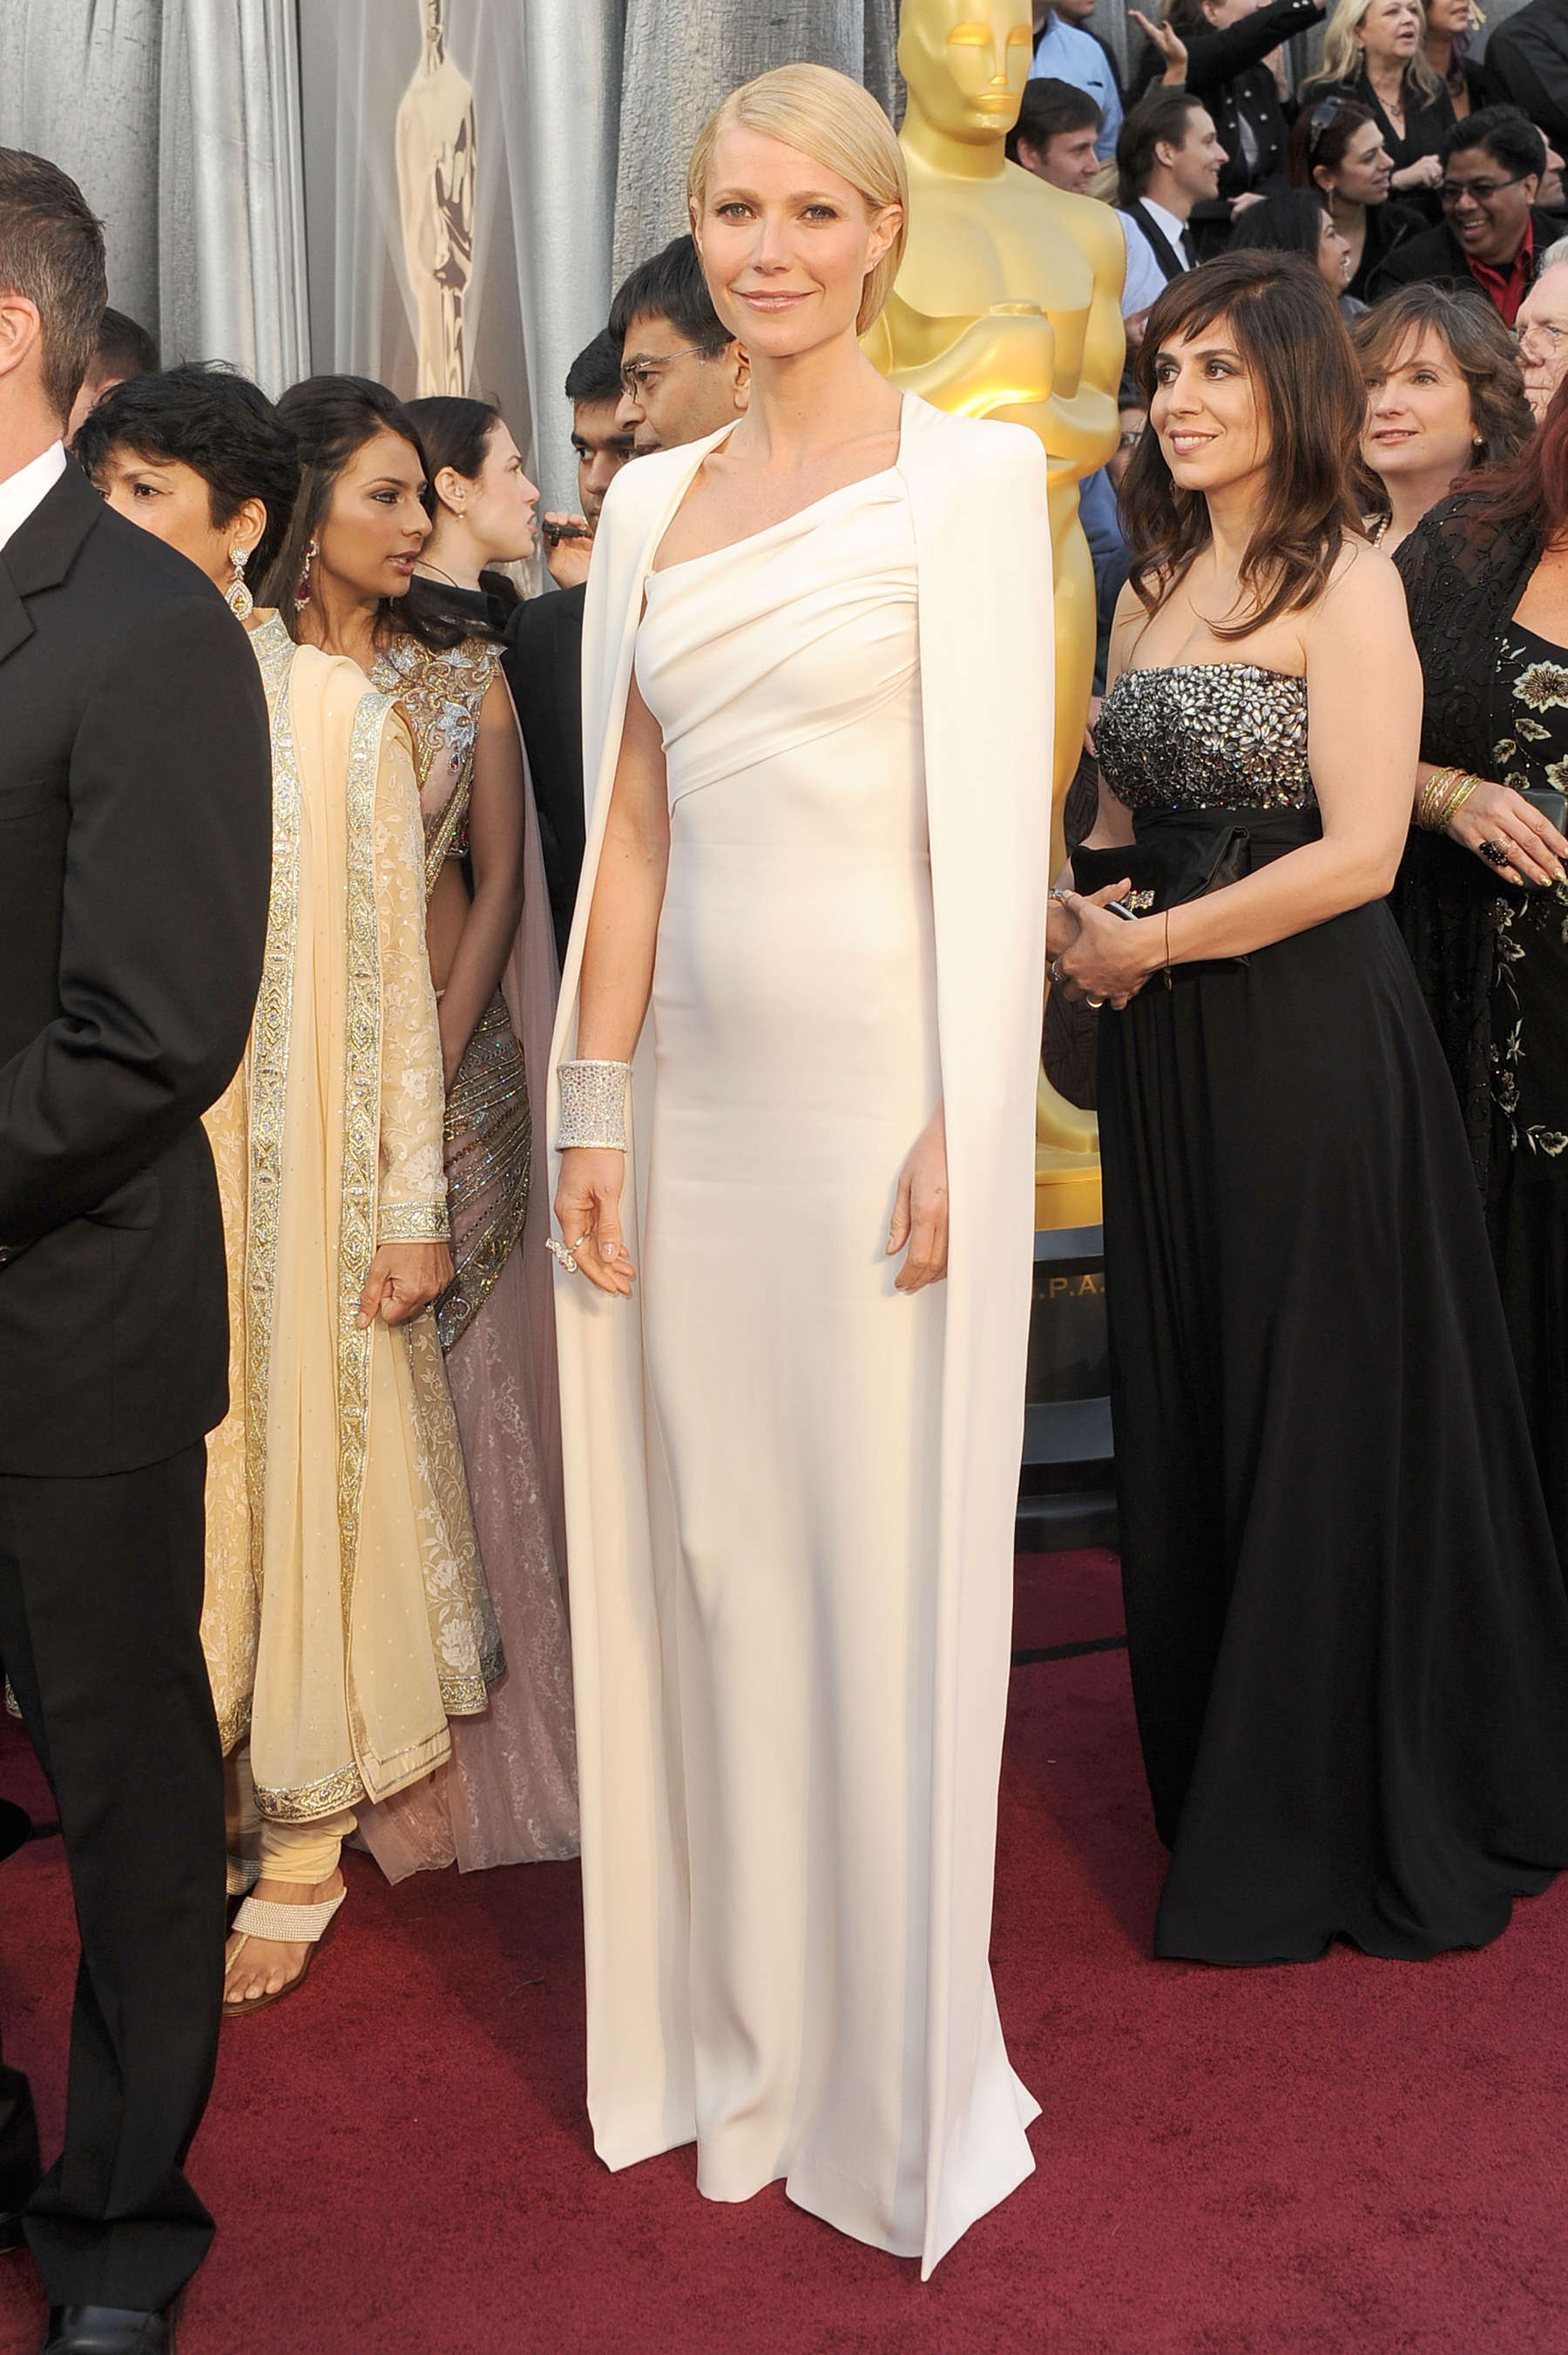 Gwyneth Paltrow opens up about her Oscars fashion disasters forecast